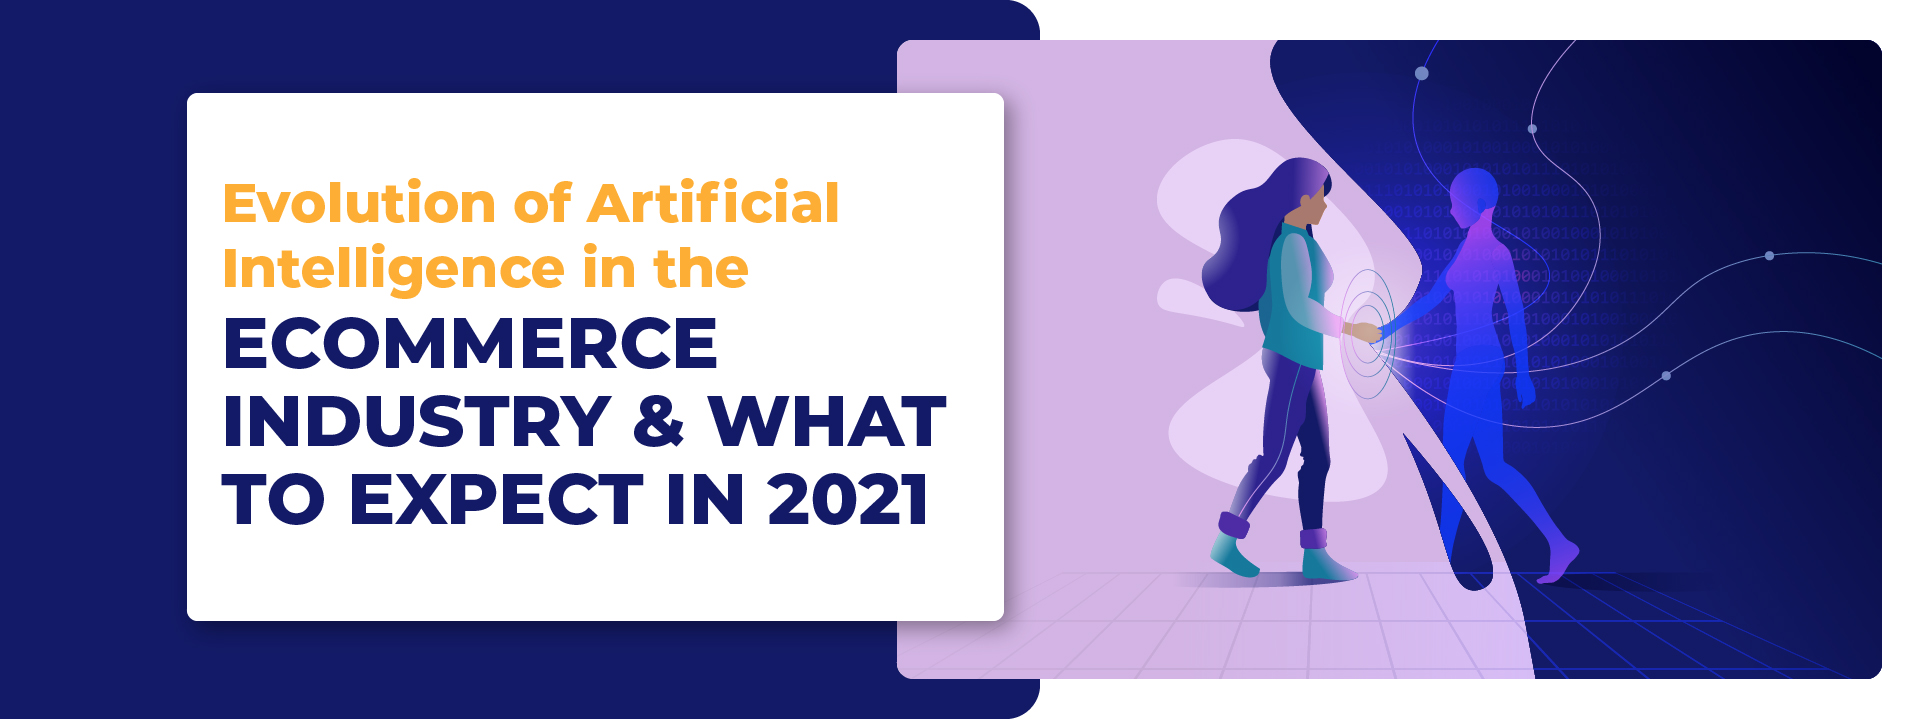 Evolution of Artificial Intelligence in the eCommerce Industry and what to expect in 2021 - Blog - Netmaxims